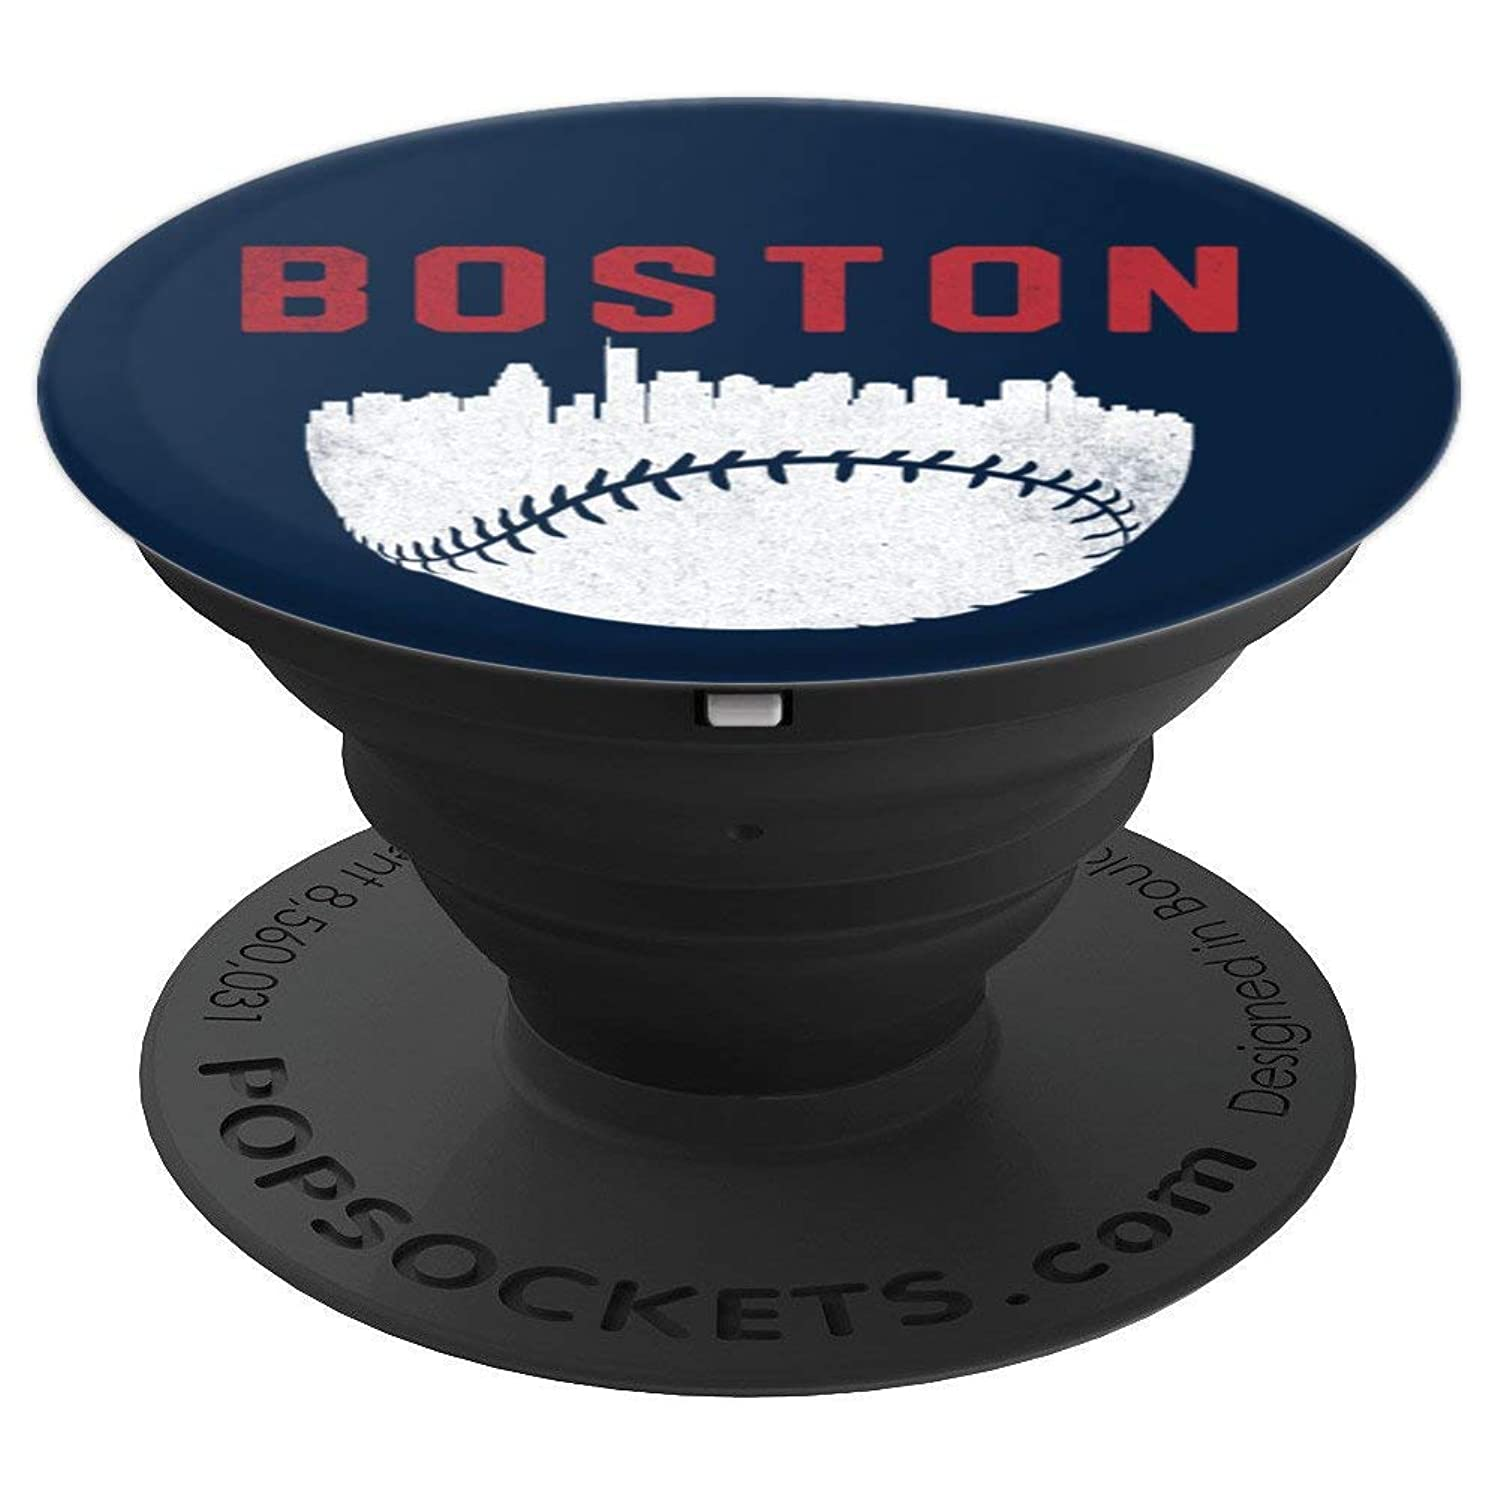 Vintage Boston Massachusetts Cityscape Baseball - PopSockets Grip and Stand for Phones and Tablets